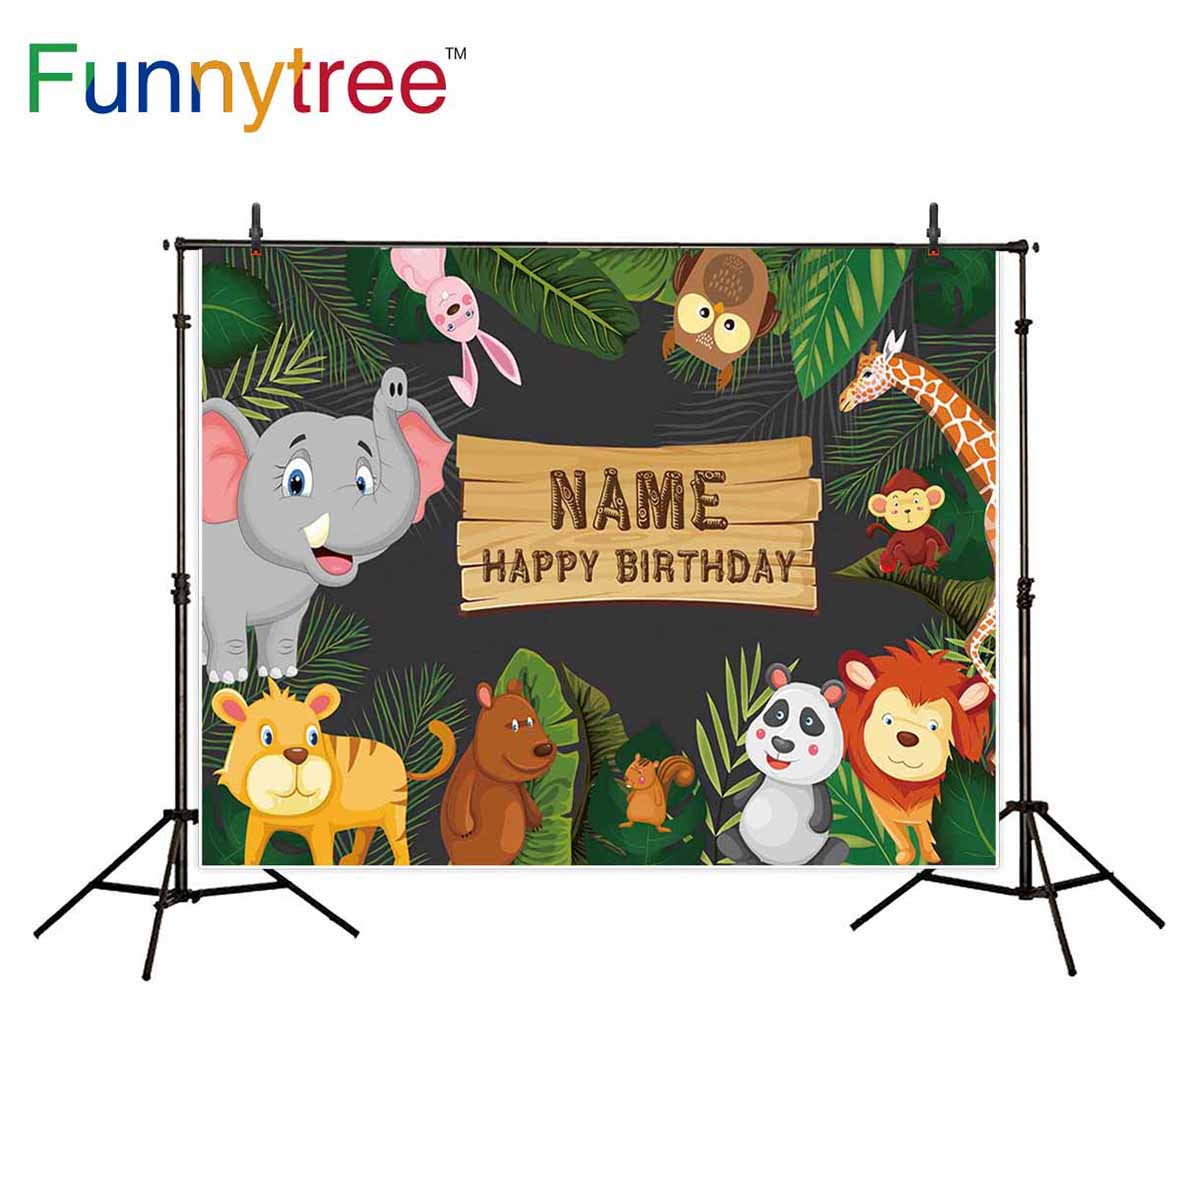 Funnytree birthday backgrounds for photography studio Jungle party animals cartoon leaves forest kid backdrop printed photocall игровой набор peppa pig пеппа в автомобиле